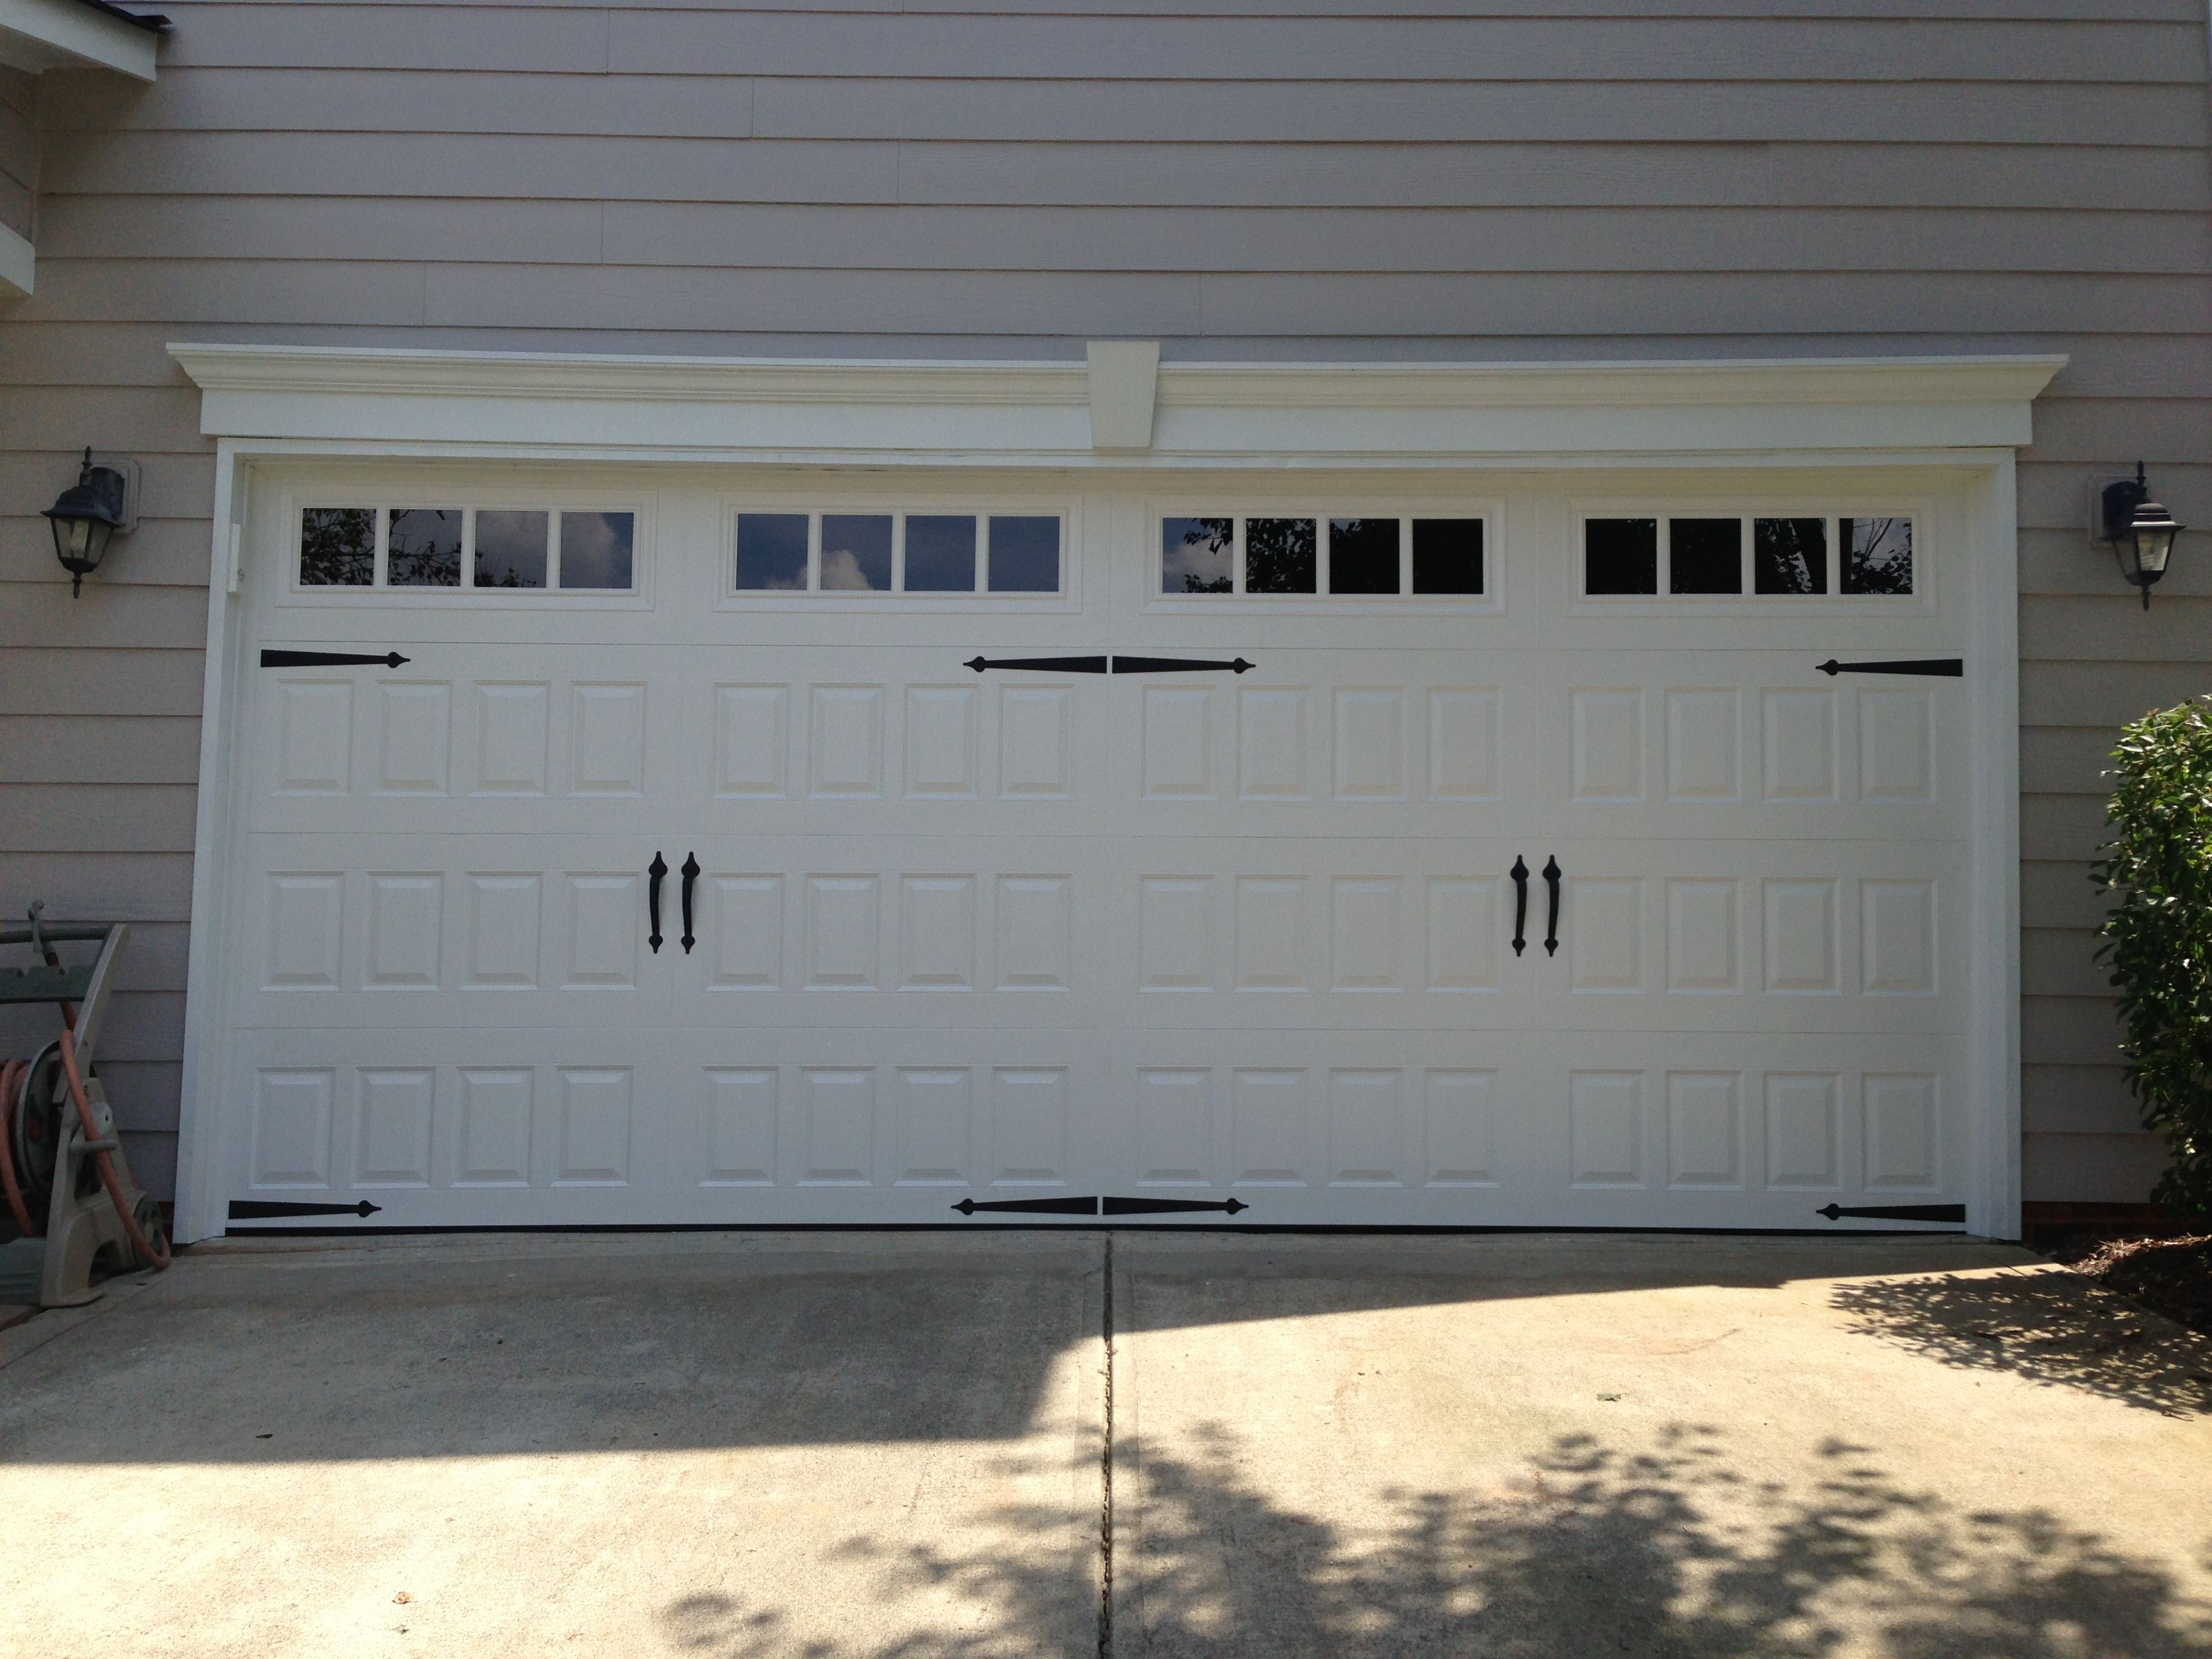 Carriage double garage door - Steel Raised Panel Carriage House Garage Door With Windows And Decorative Handles Hinges